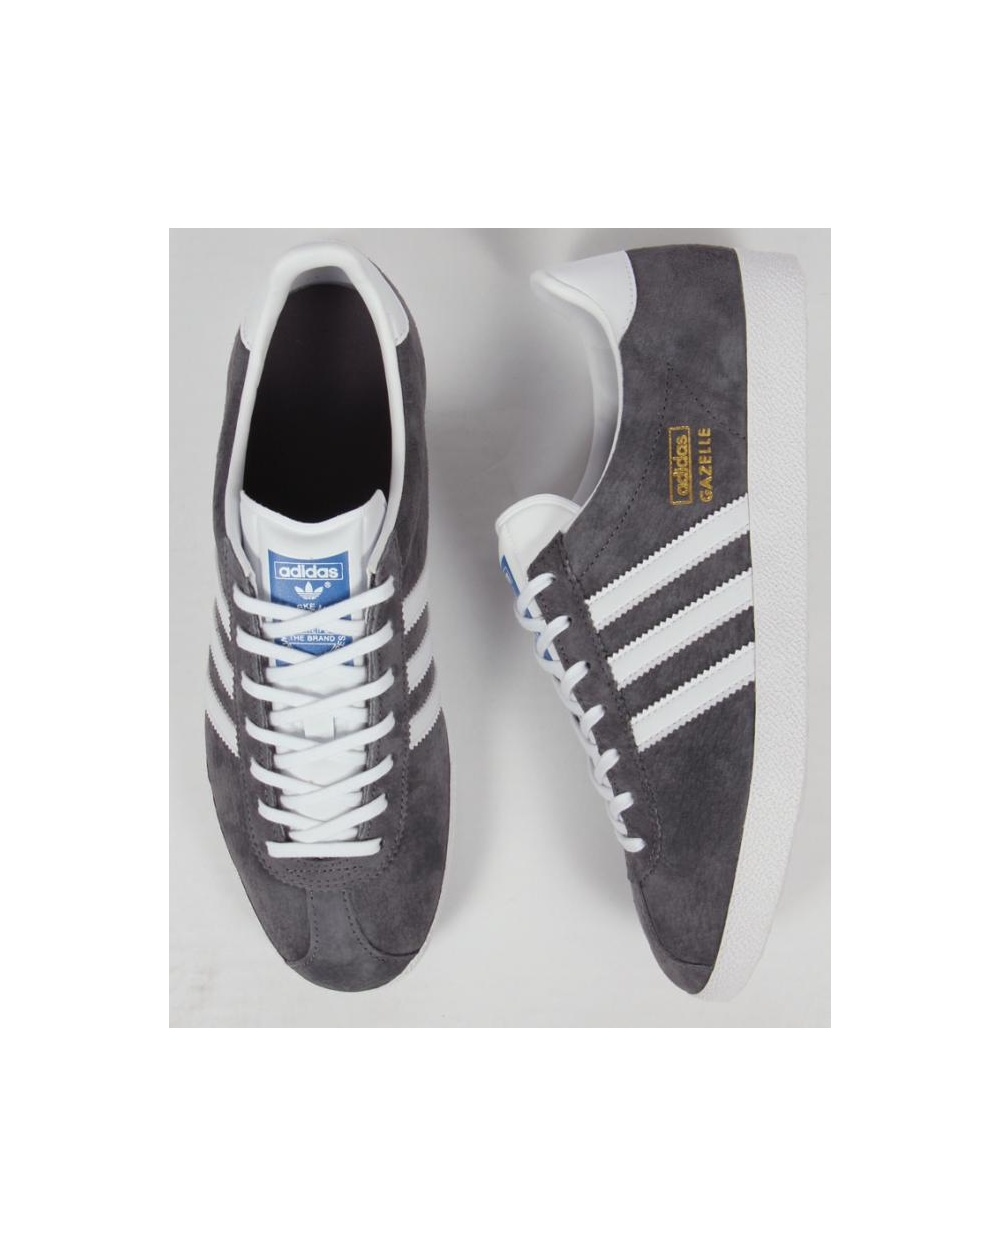 confesar mariposa Tesauro  Adidas Gazelle Og Trainers Sharp Grey/White, originals, Adidas ...